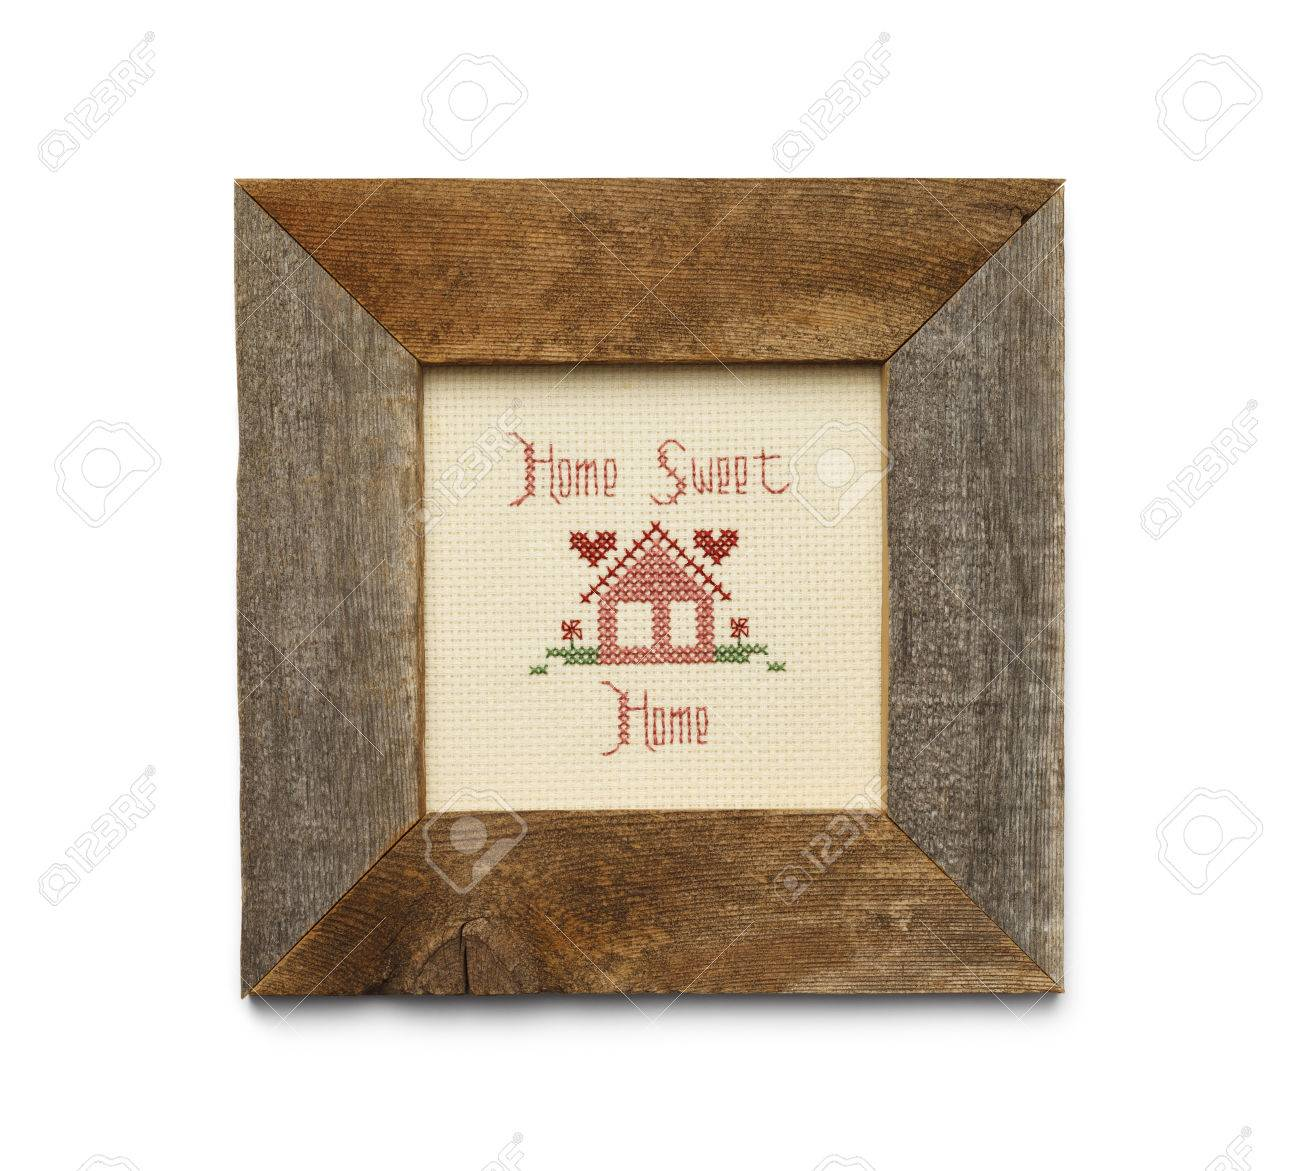 Home Sweet Home Cross Stitch In Square Wood Frame Isolated On